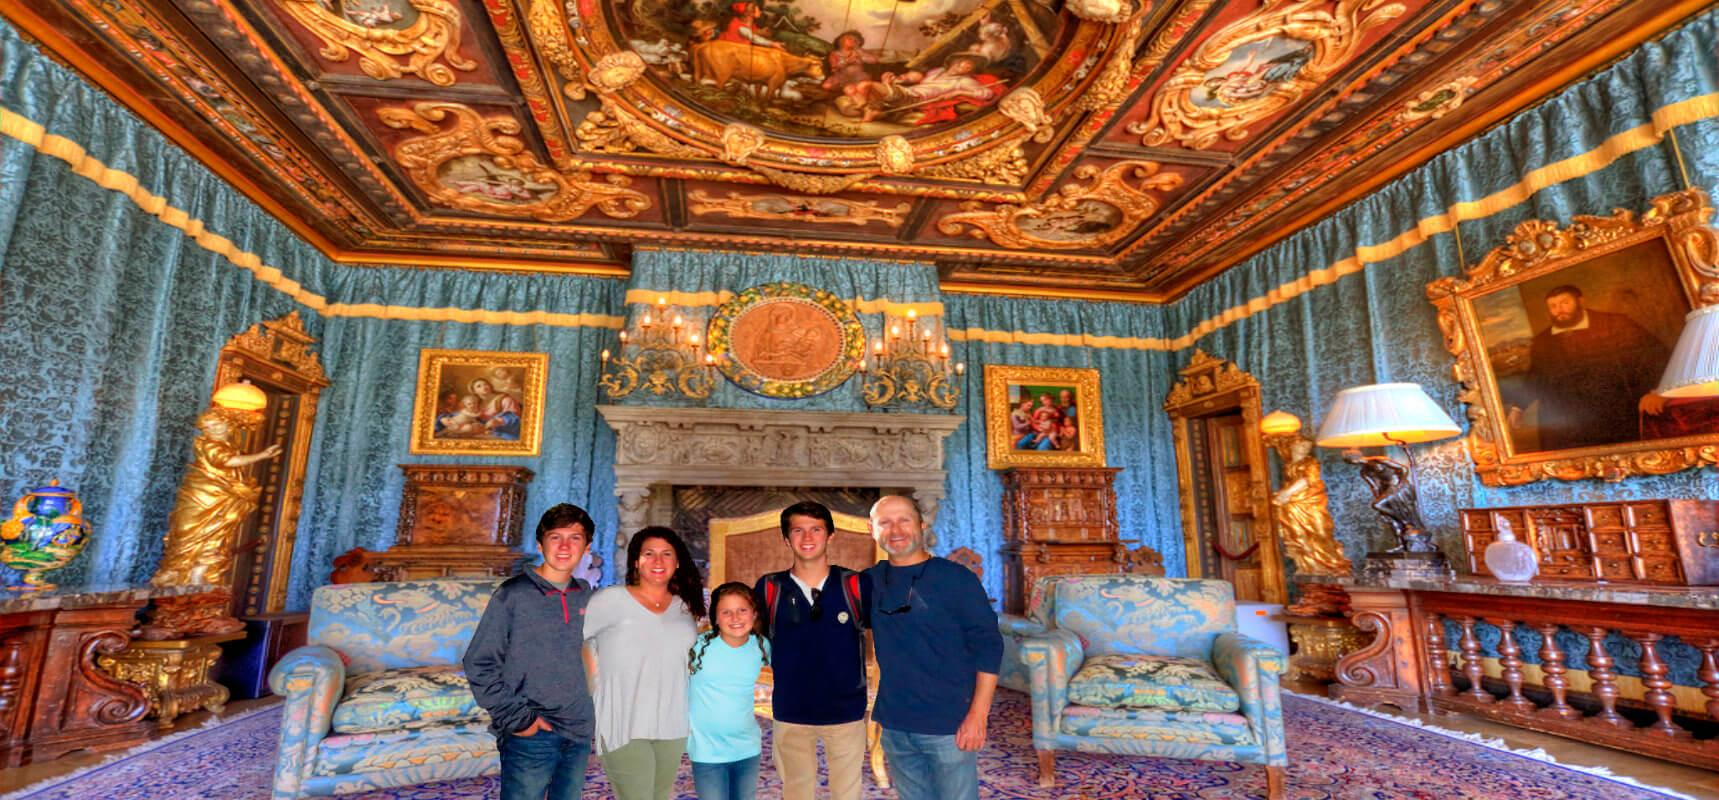 Hearst-Castle-Upstairs-Suites-Tour-Grand-Rooms-tours(1)